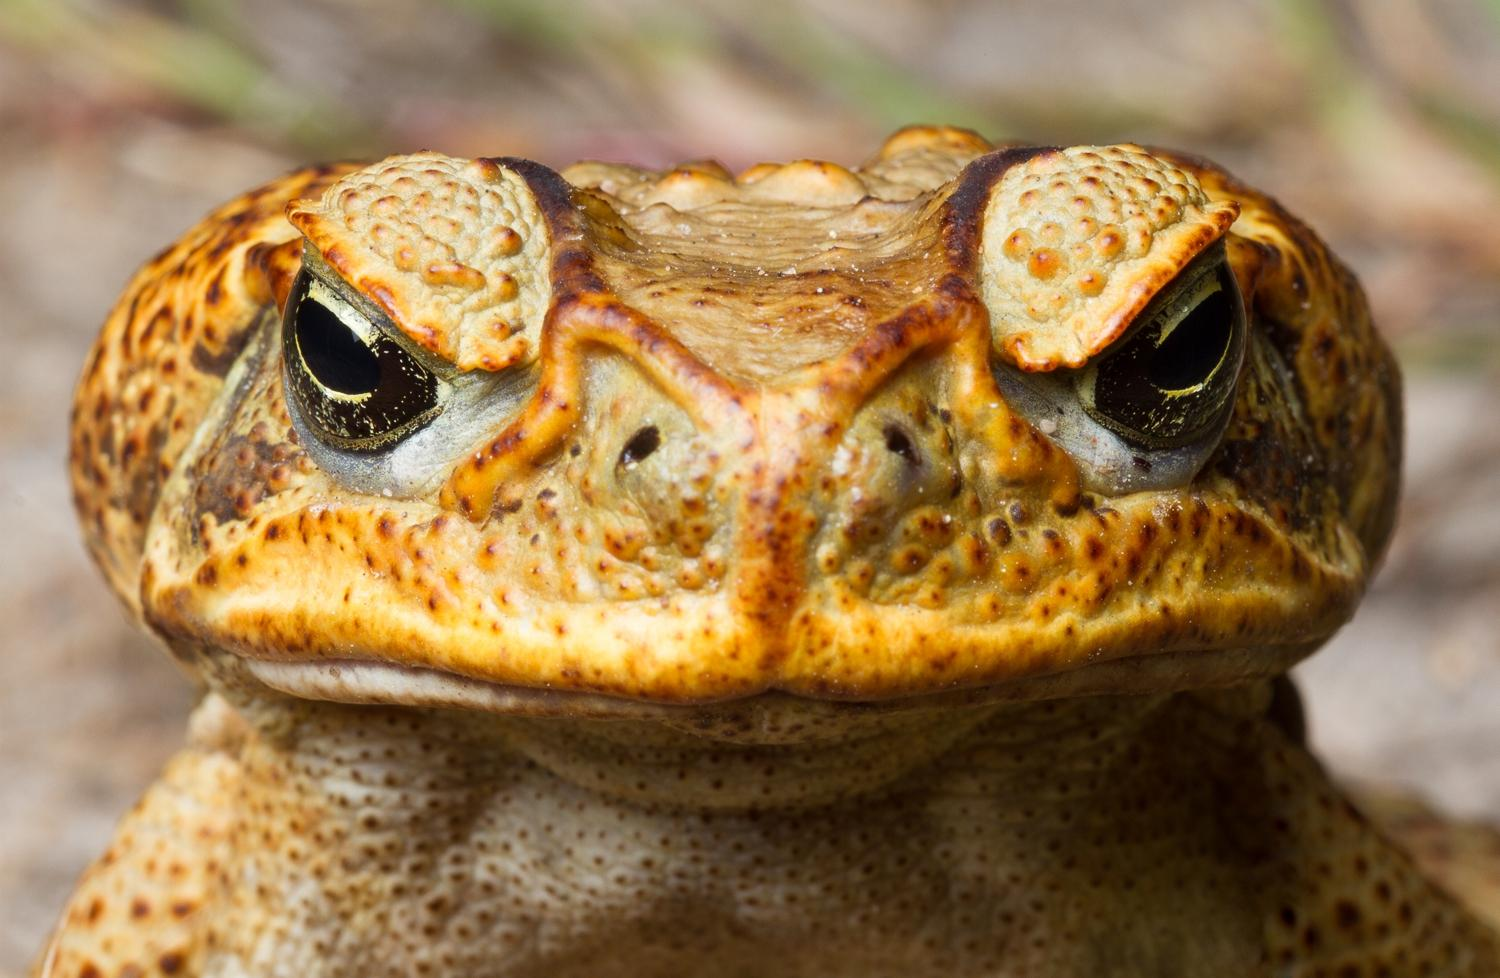 Supplied image of Cane Toad from Department of Primary Industries.